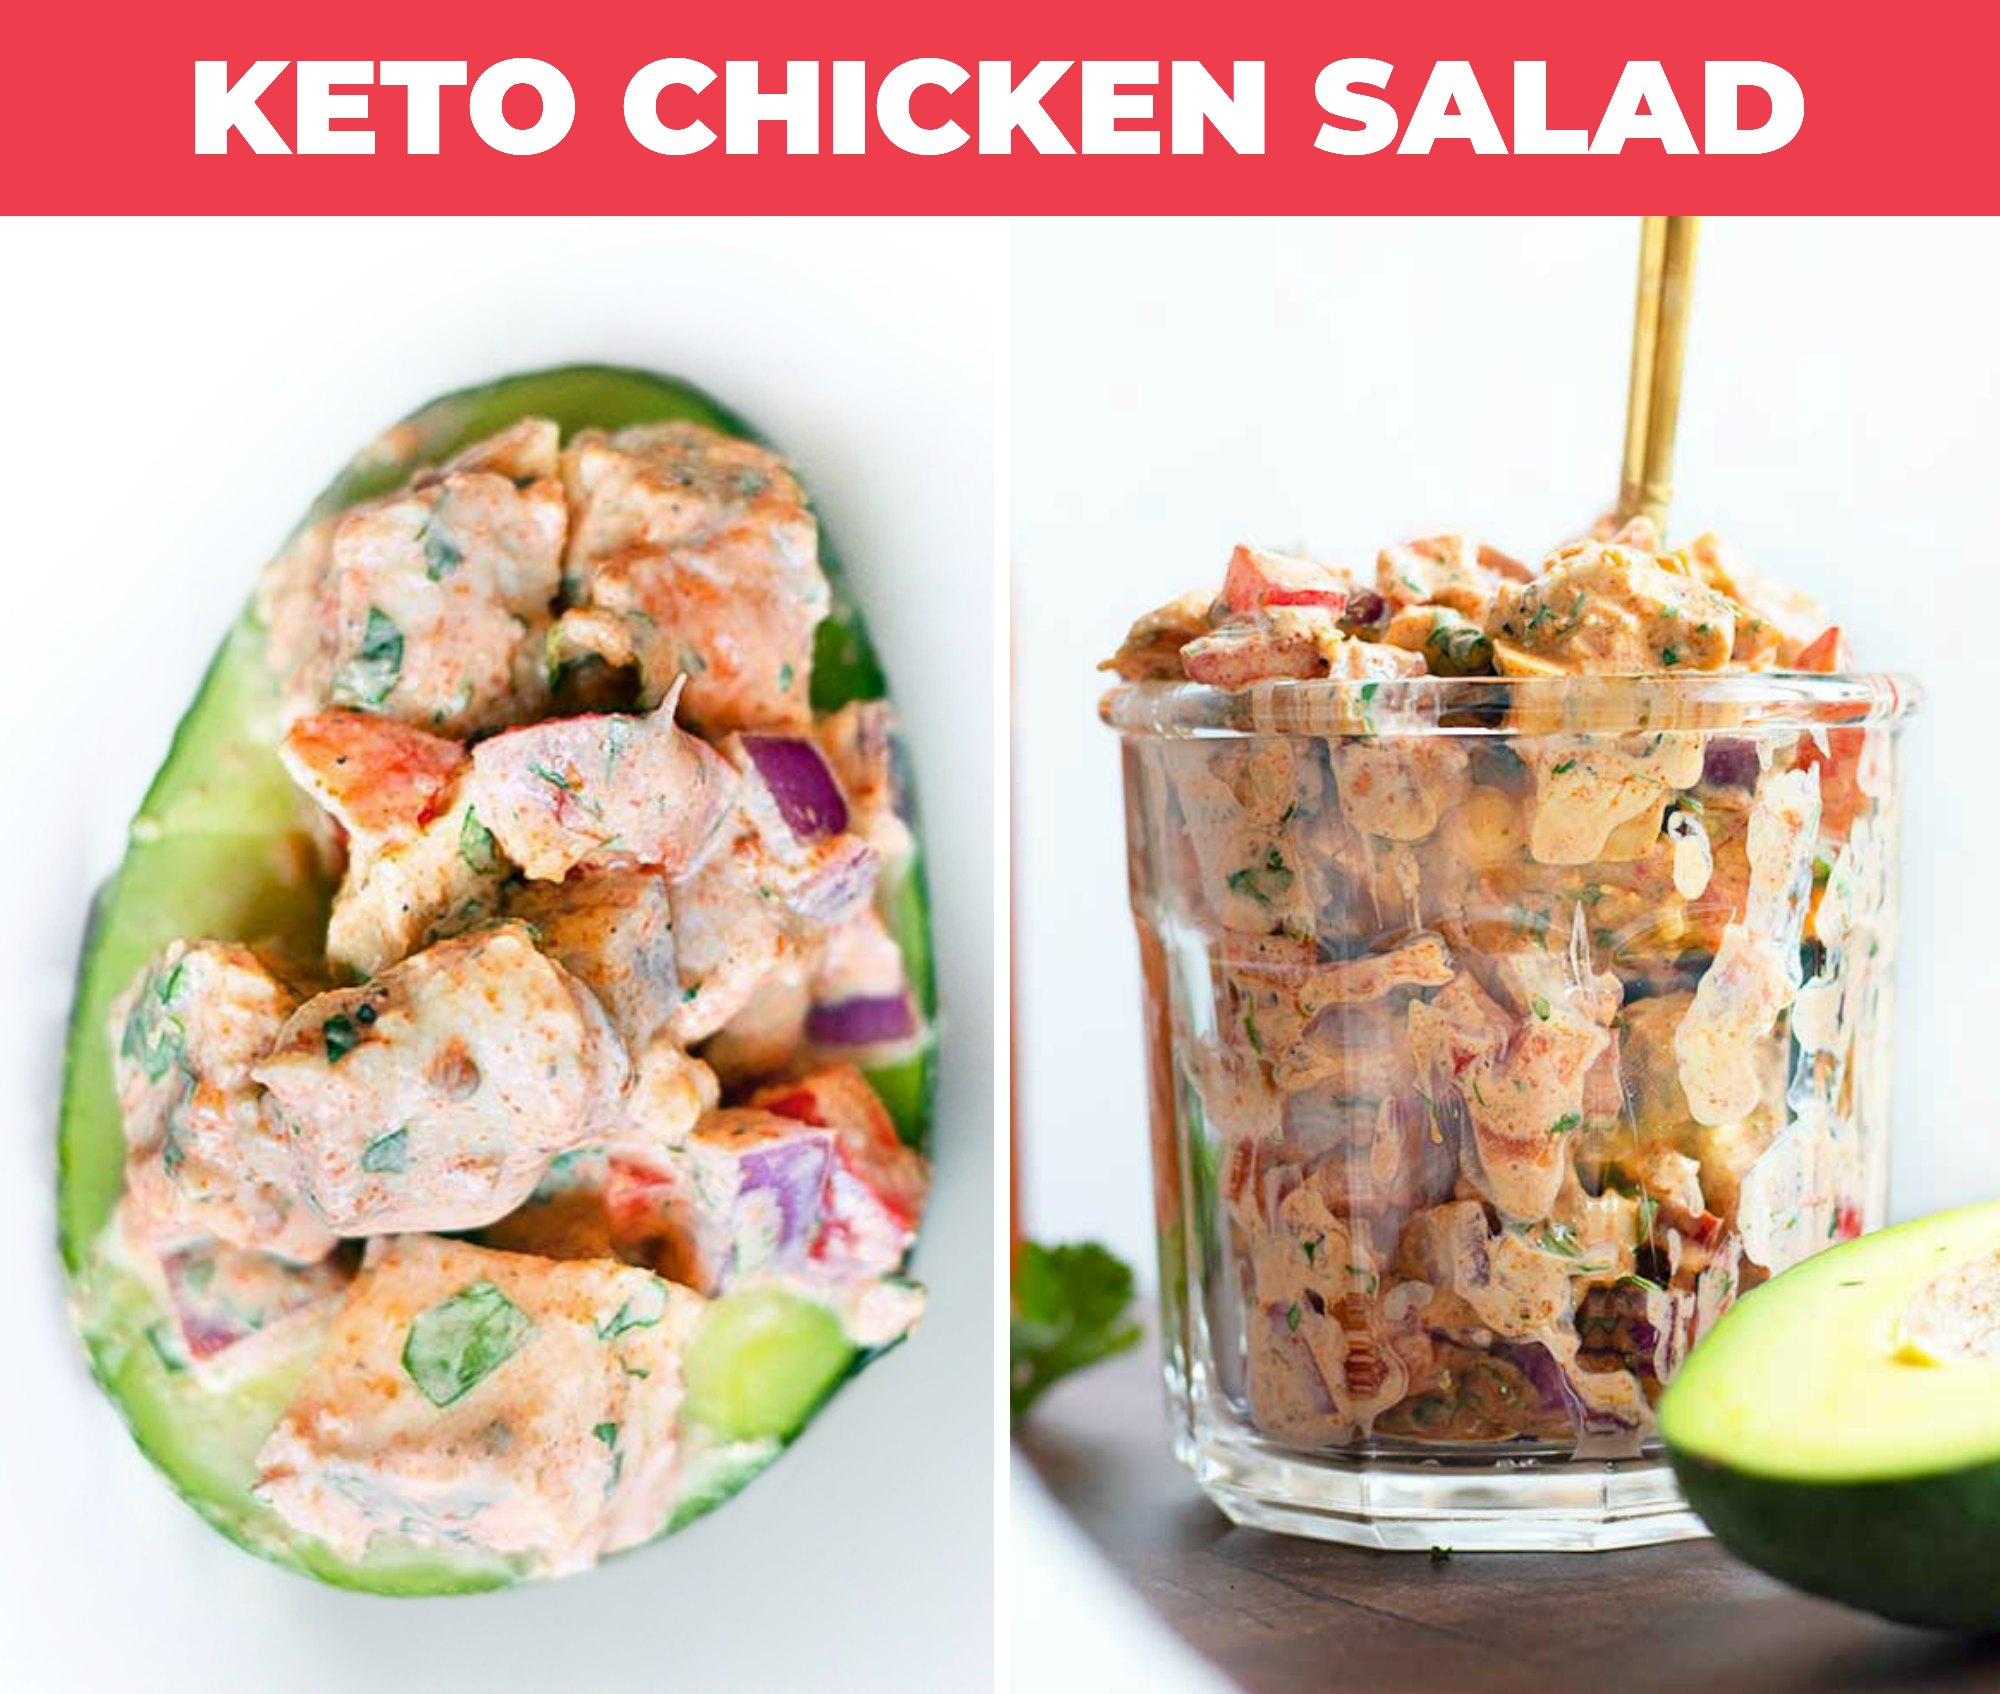 Images of keto chicken salad in an avocado and in a glass